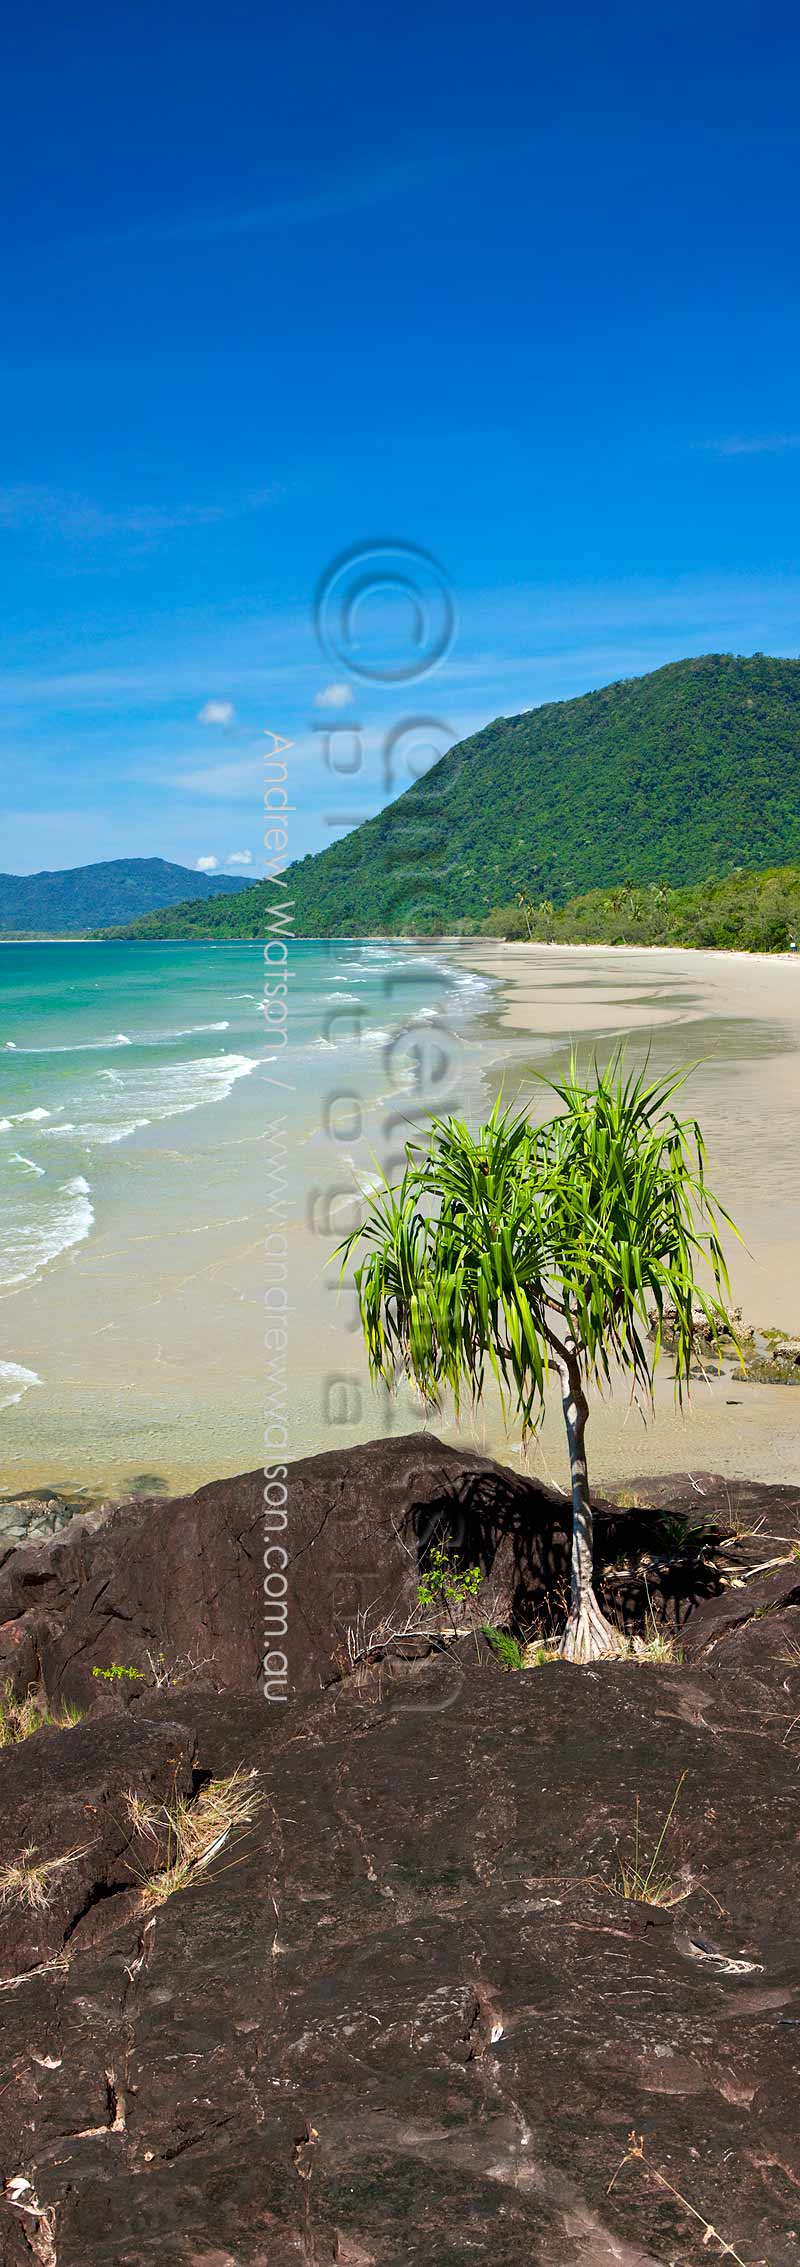 Pandanus palm overlooking Noah's BeachDaintree National Park, North QueenslandImage available for licensing or as a fine-art print... please enquire